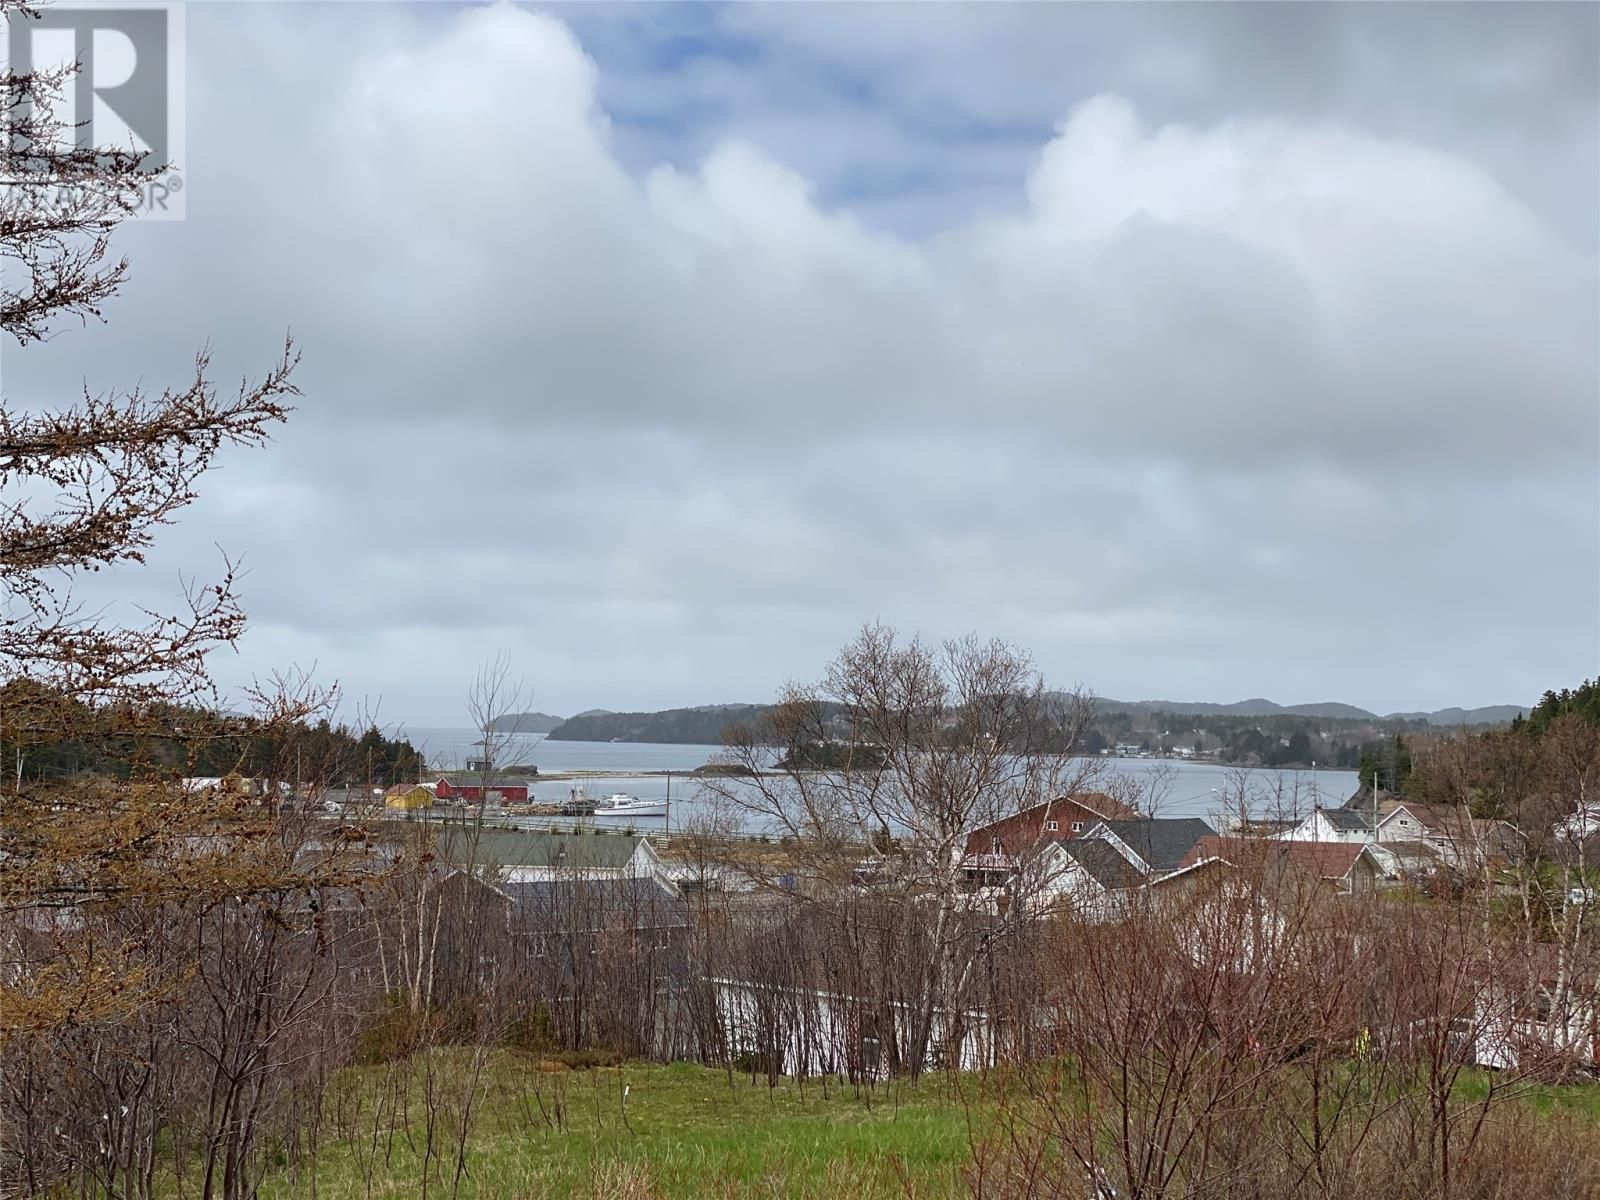 Main Photo: 71 Road to the Isles in Summerford: Vacant Land for sale : MLS®# 1229209